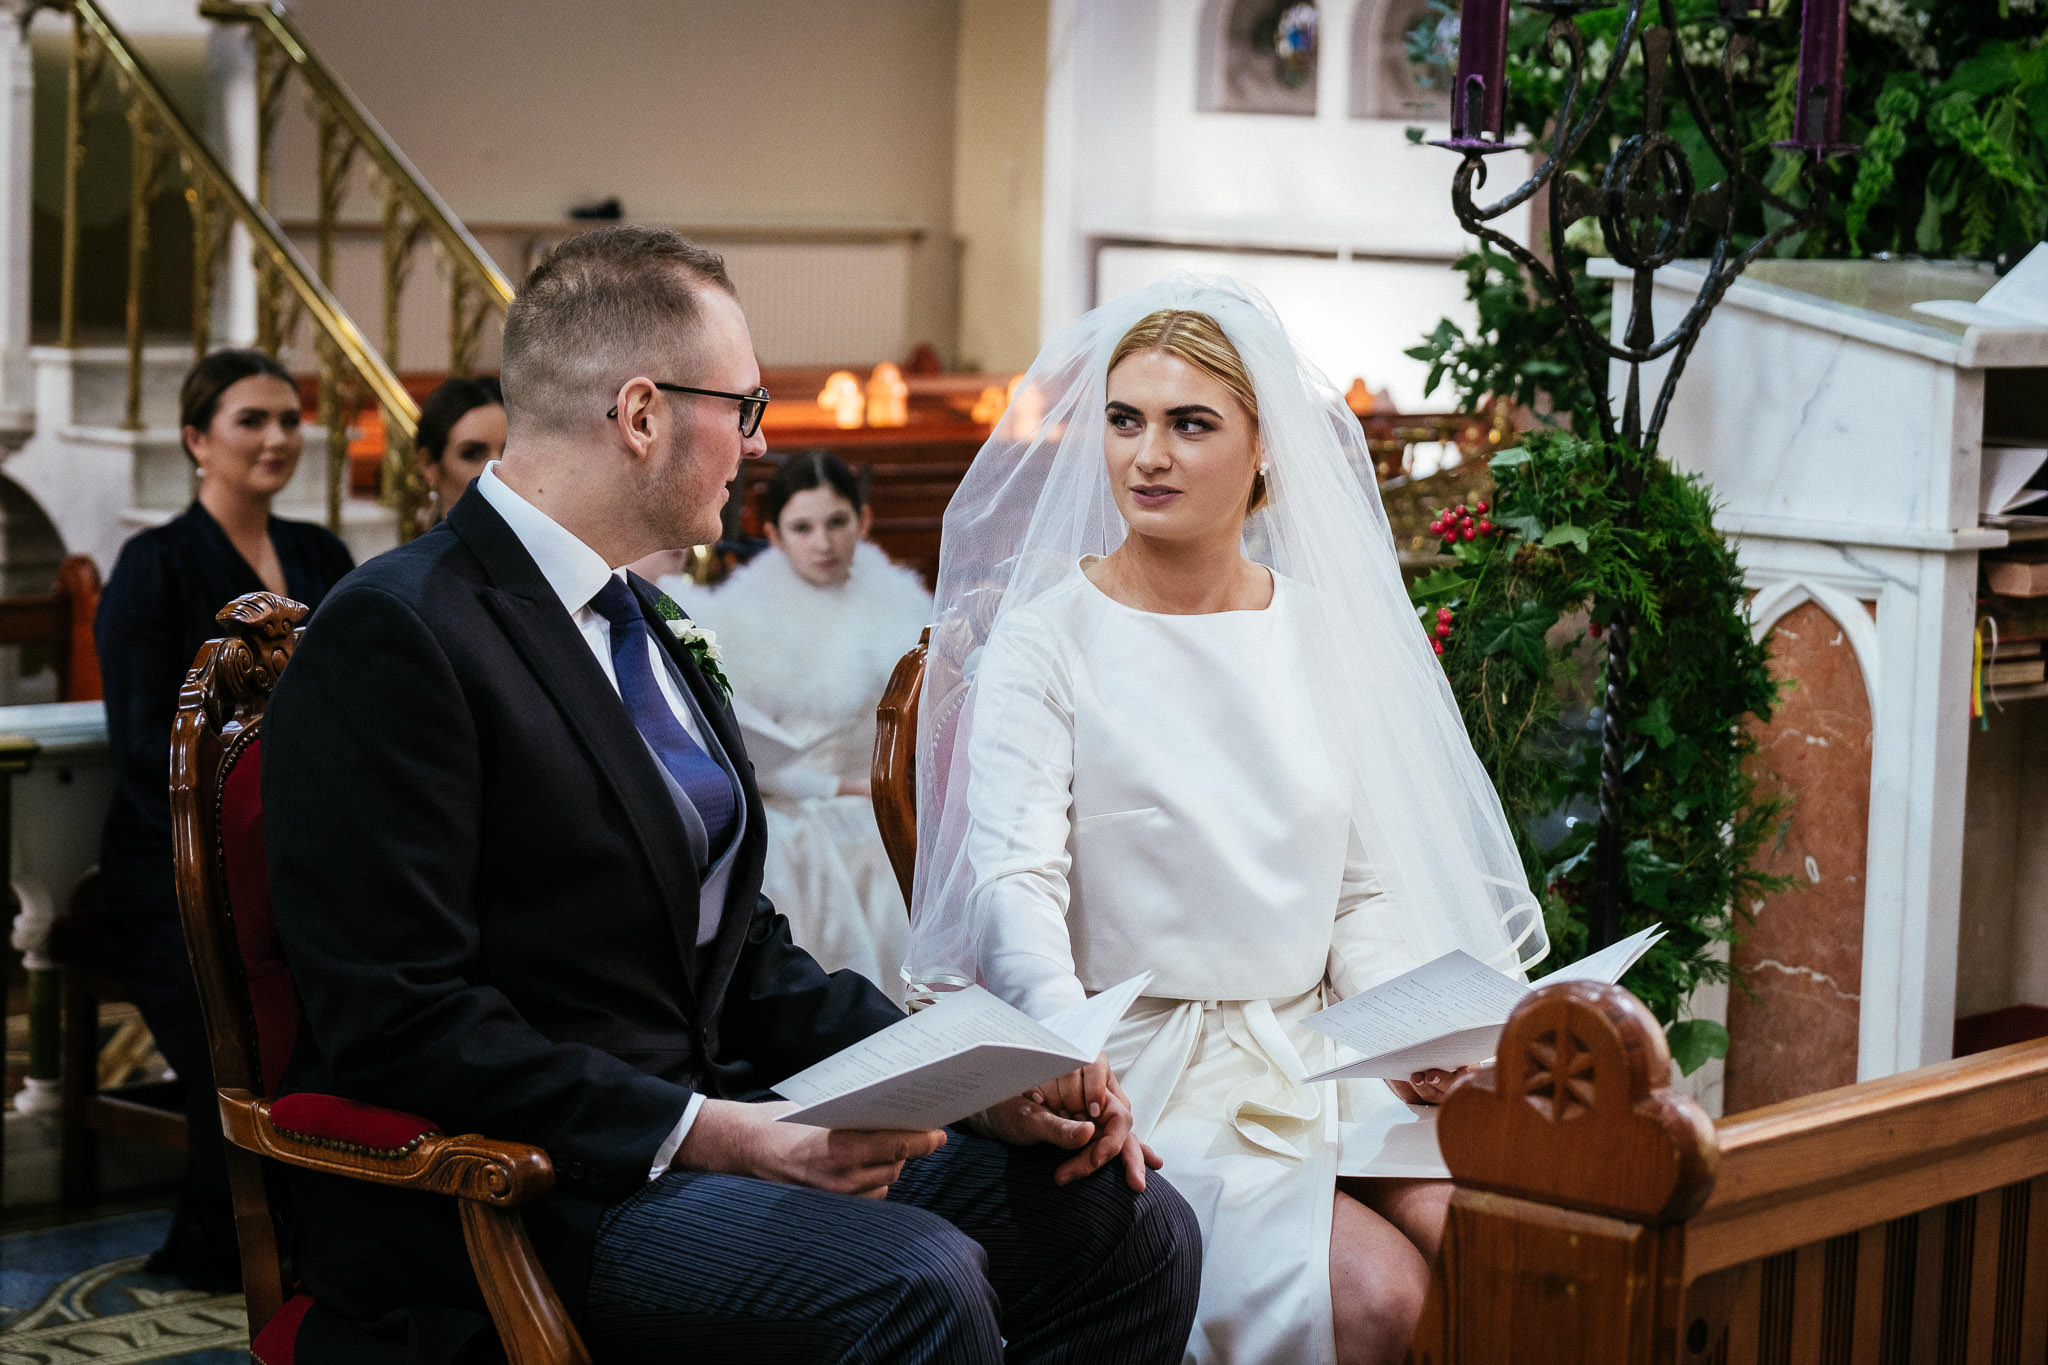 bride and groom exchanging glances during wedding ceremony at St Brigid's Church Oldcastle